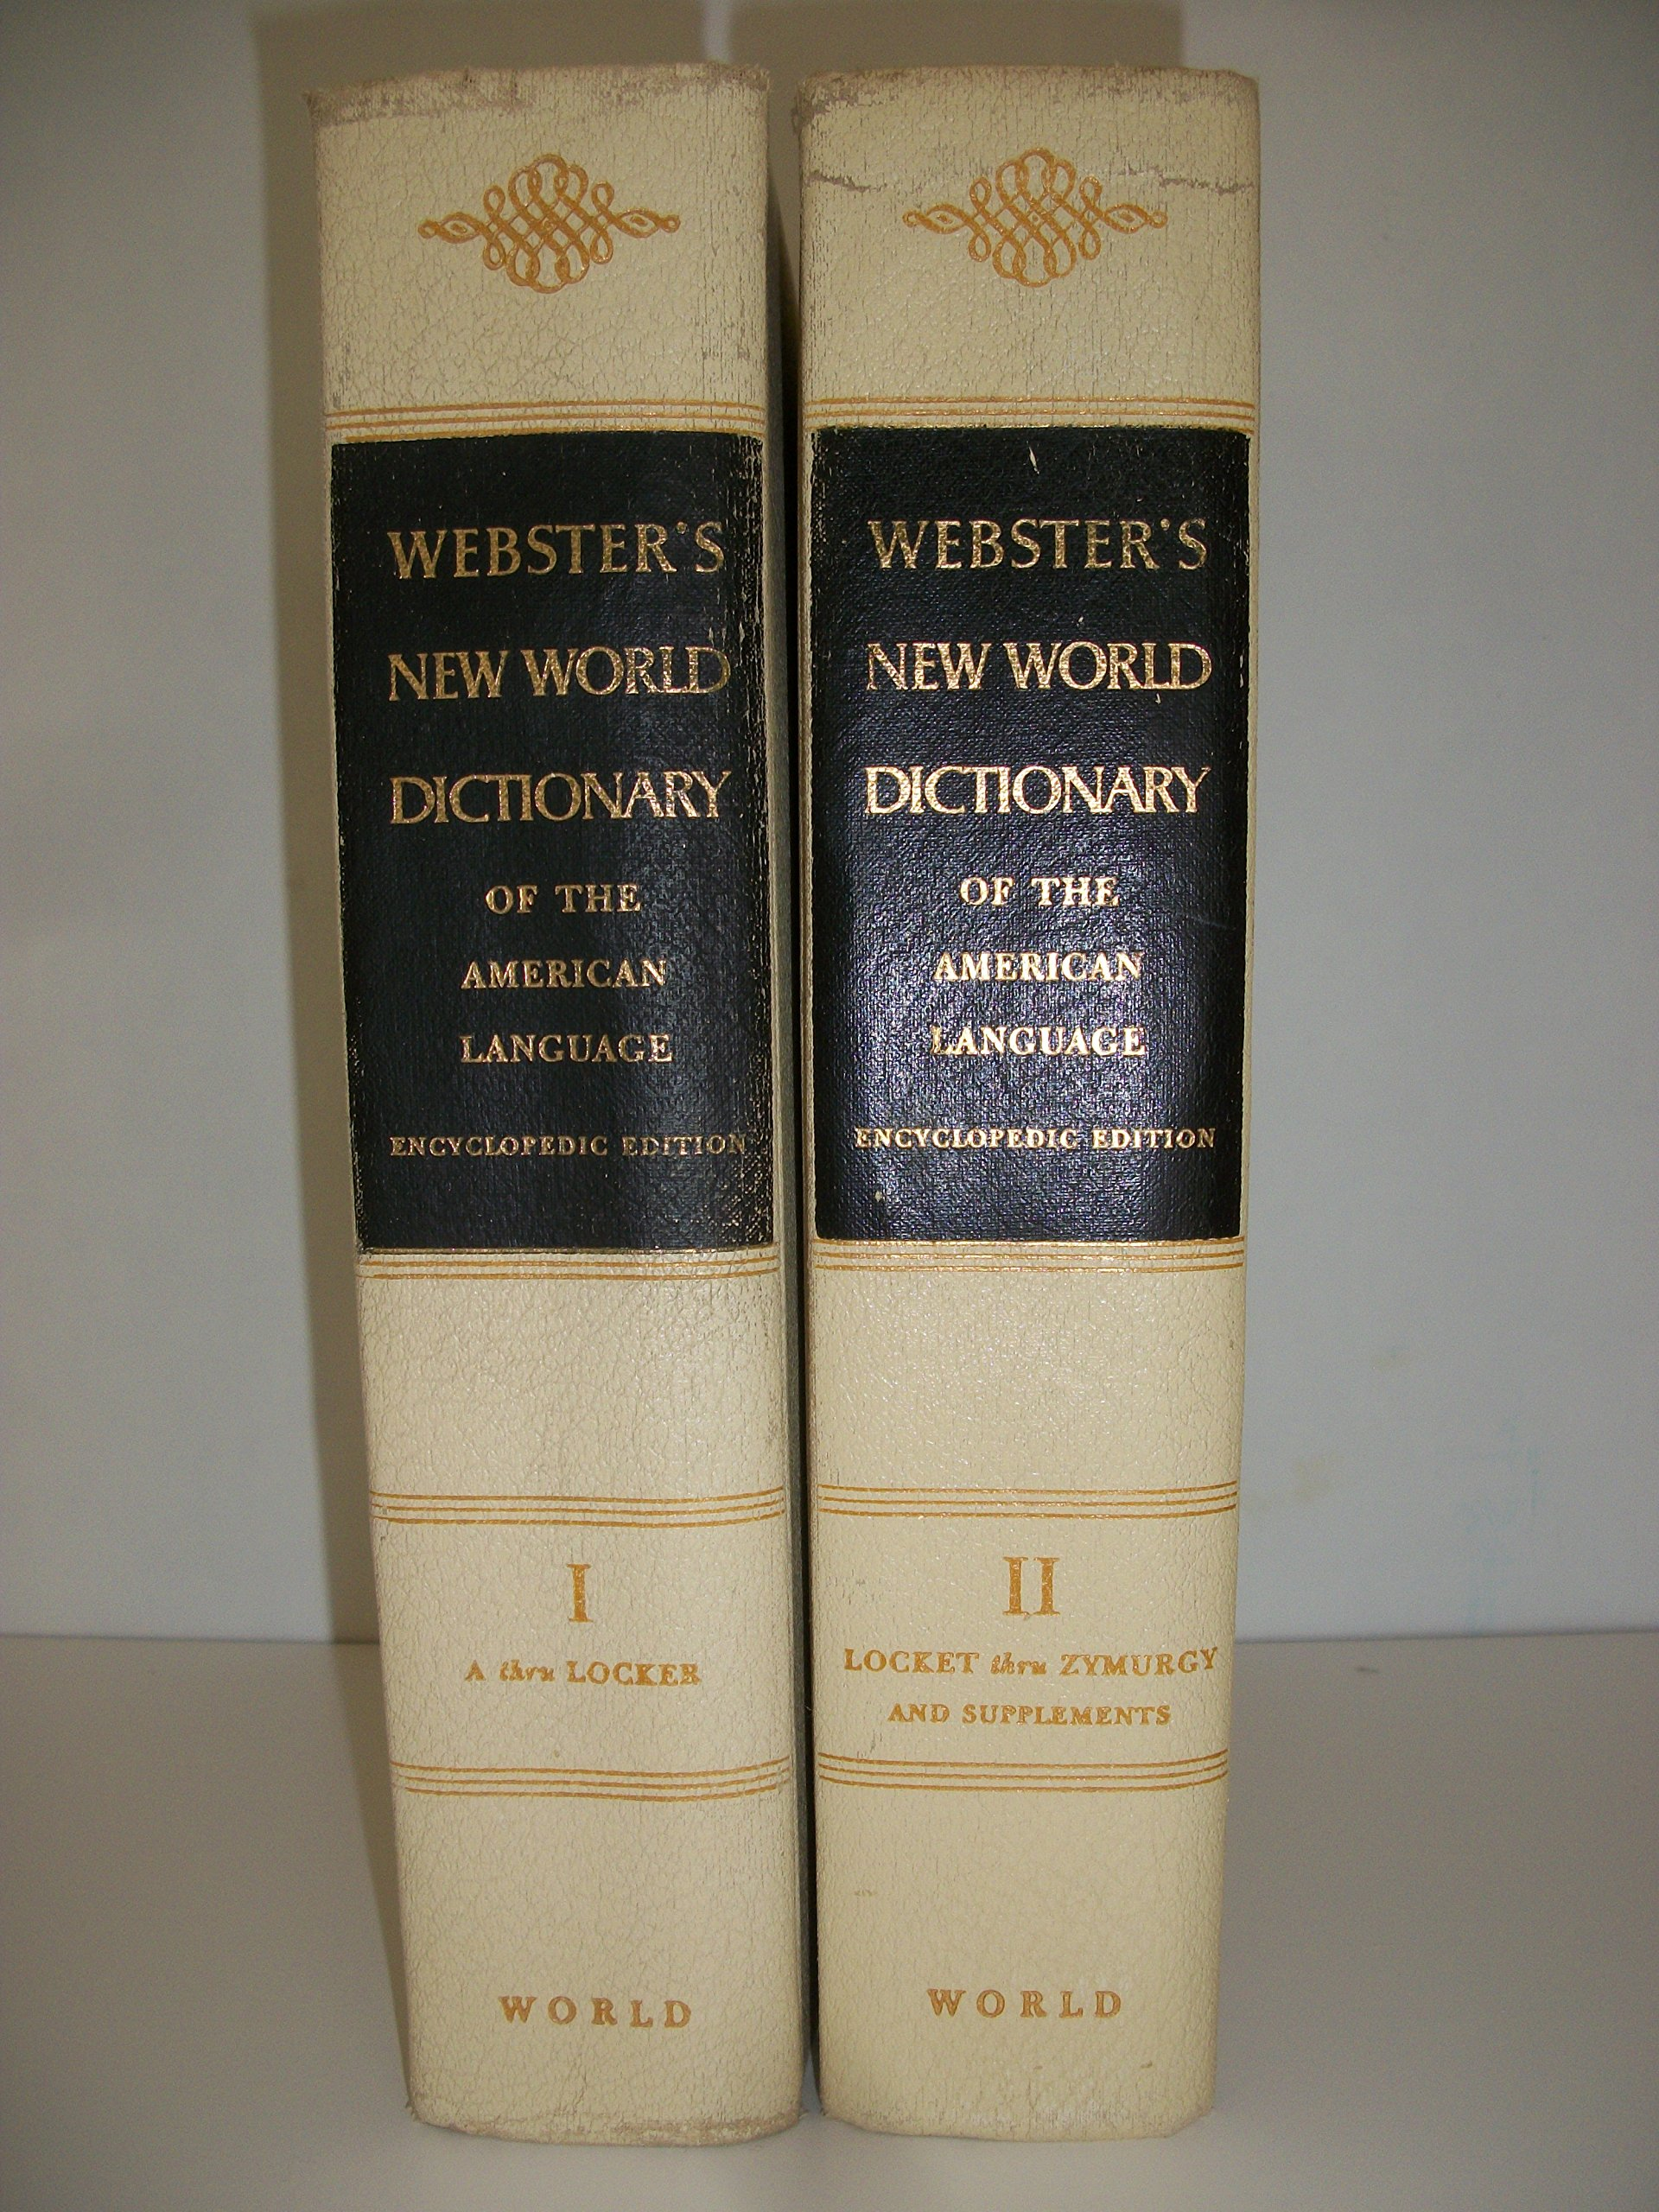 Webster's New World Dictionary of the american Languag, Encyclopedic  Edition, 2 Volume Set: Editor: Amazon.com: Books